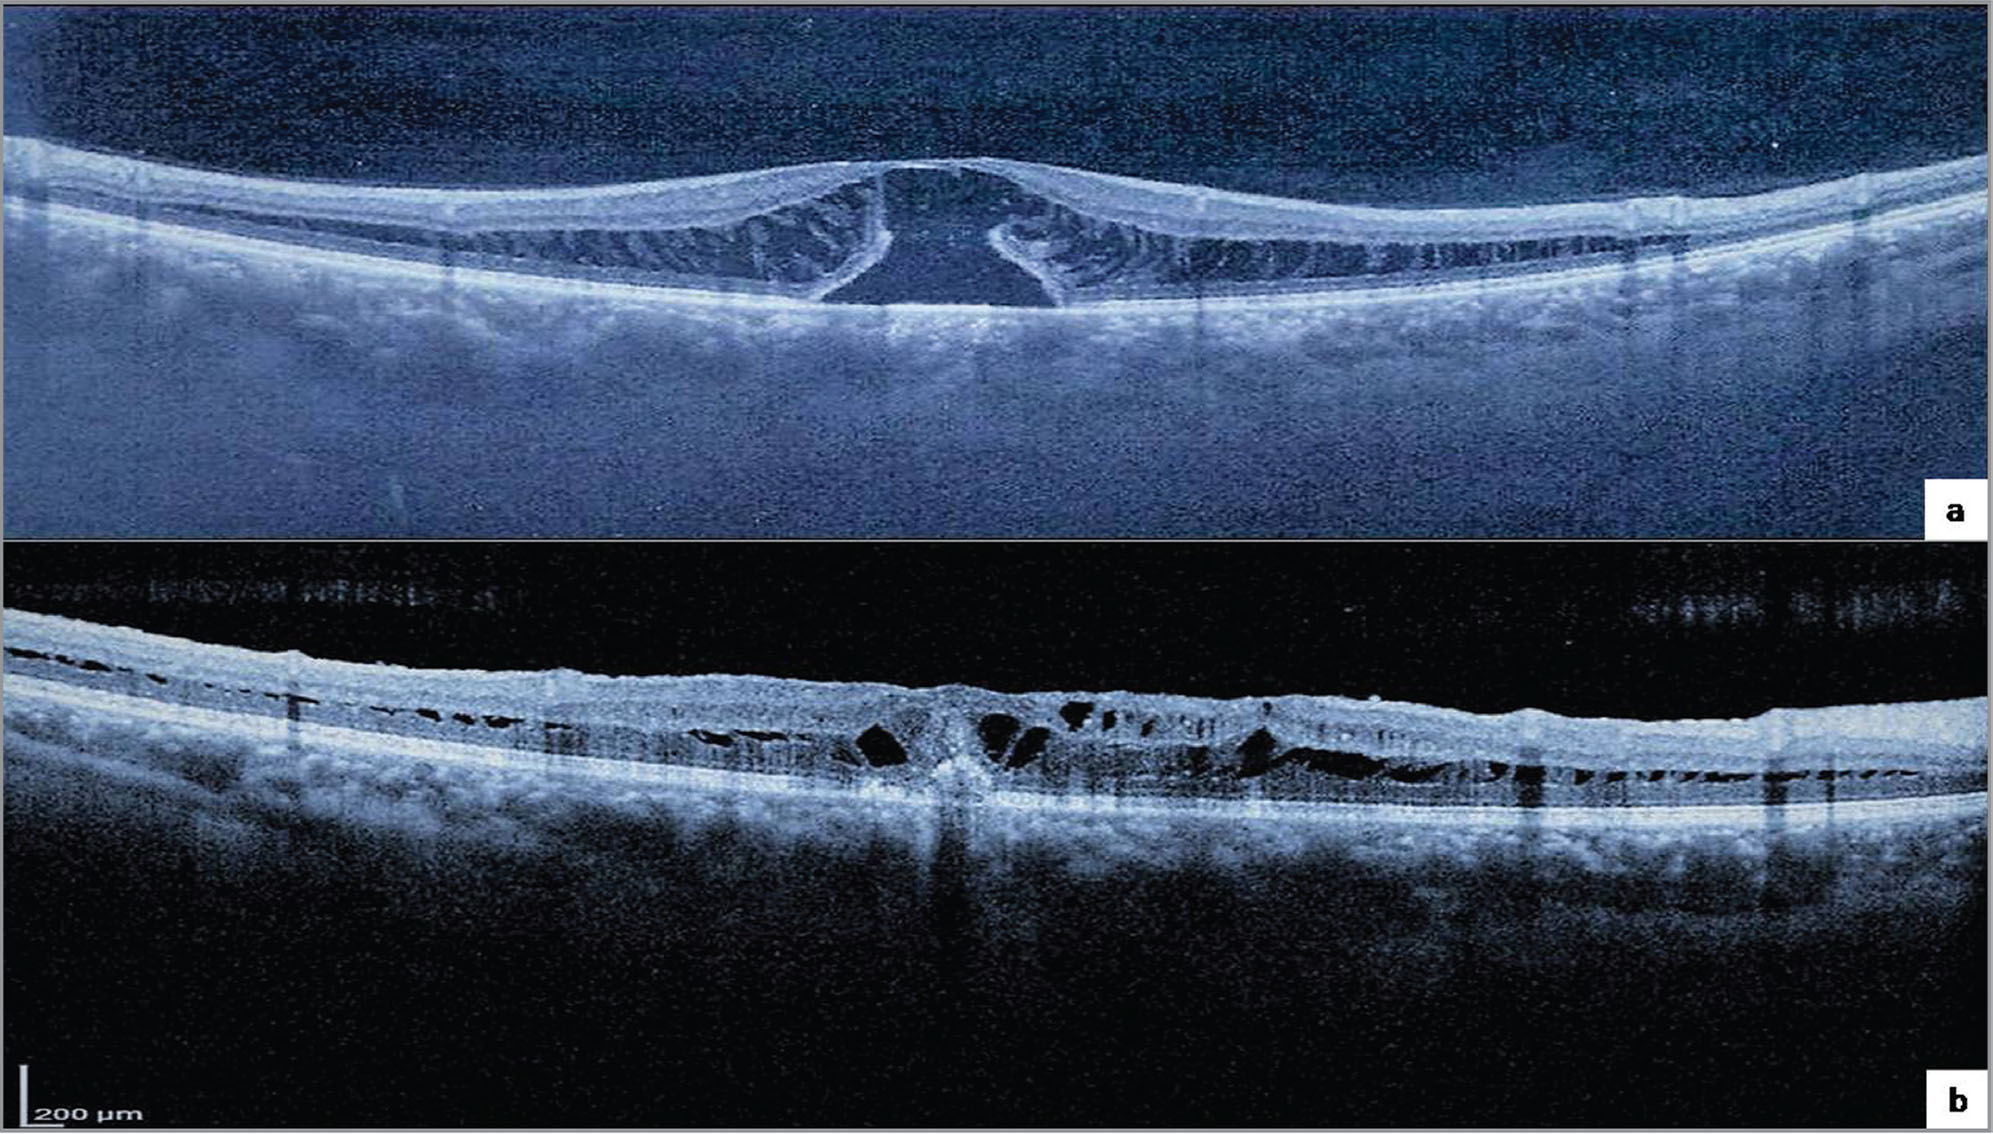 "Spectral-domain optical coherence tomography of the right eye demonstrating (A) macular schisis and a large subfoveal outer retinal defect (base and minimum diameter of the outer retinal defect were 1,020 μm and 680 μm, respectively) with a thin inner layer cap. Subsequent autologous internal limiting membrane ""chunk"" transplantation resulted in (B) regeneration of the external limiting membrane and ellipsoid and interdigitation zones, along with bridging of the outer retinal layer deficiency."